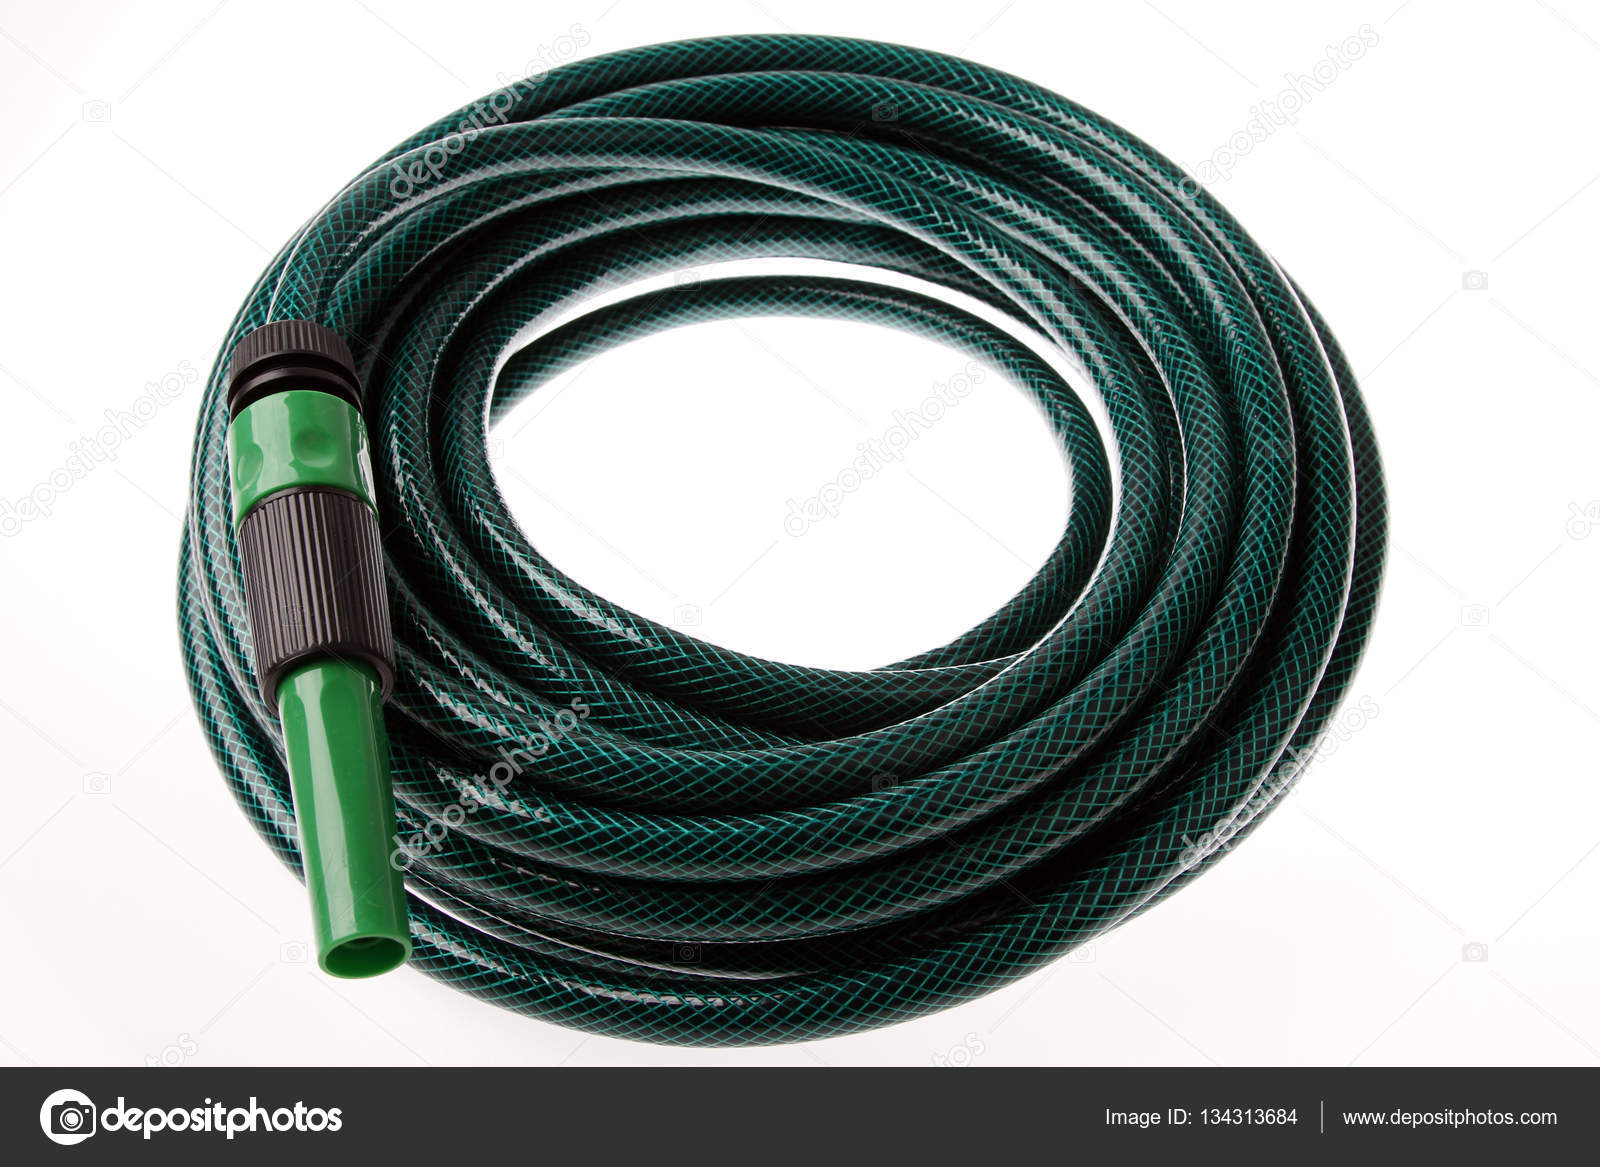 Coiled garden hose Stock Photo stillfx 134313684